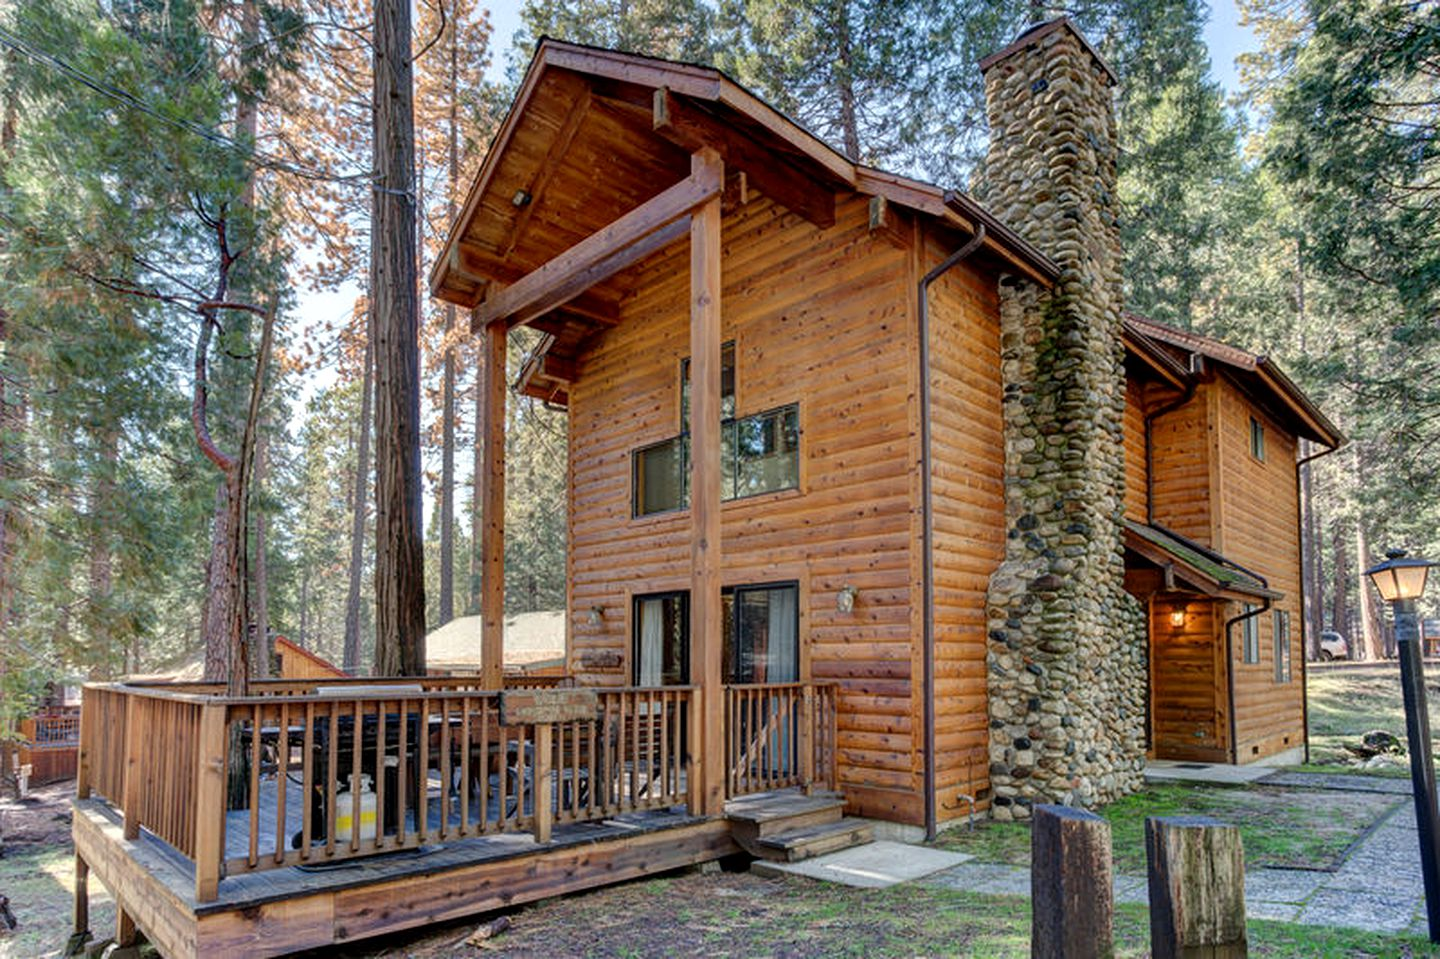 Log Cabins (Wawona, California, United States)